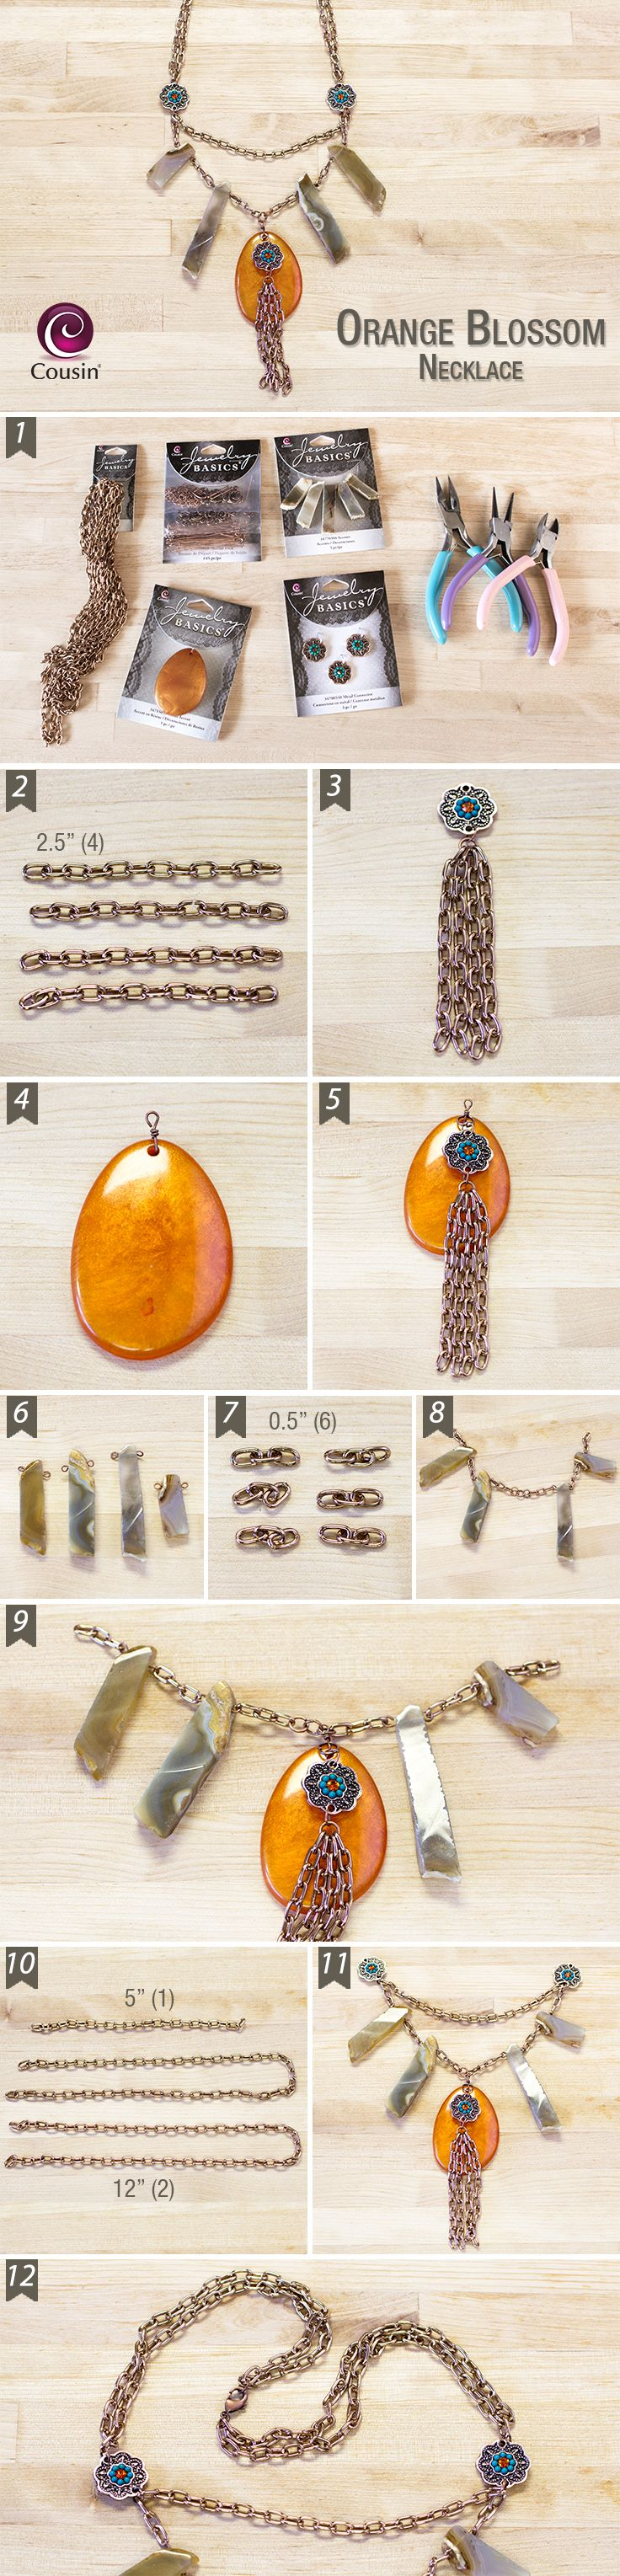 275 best Moore: Jewelry images on Pinterest